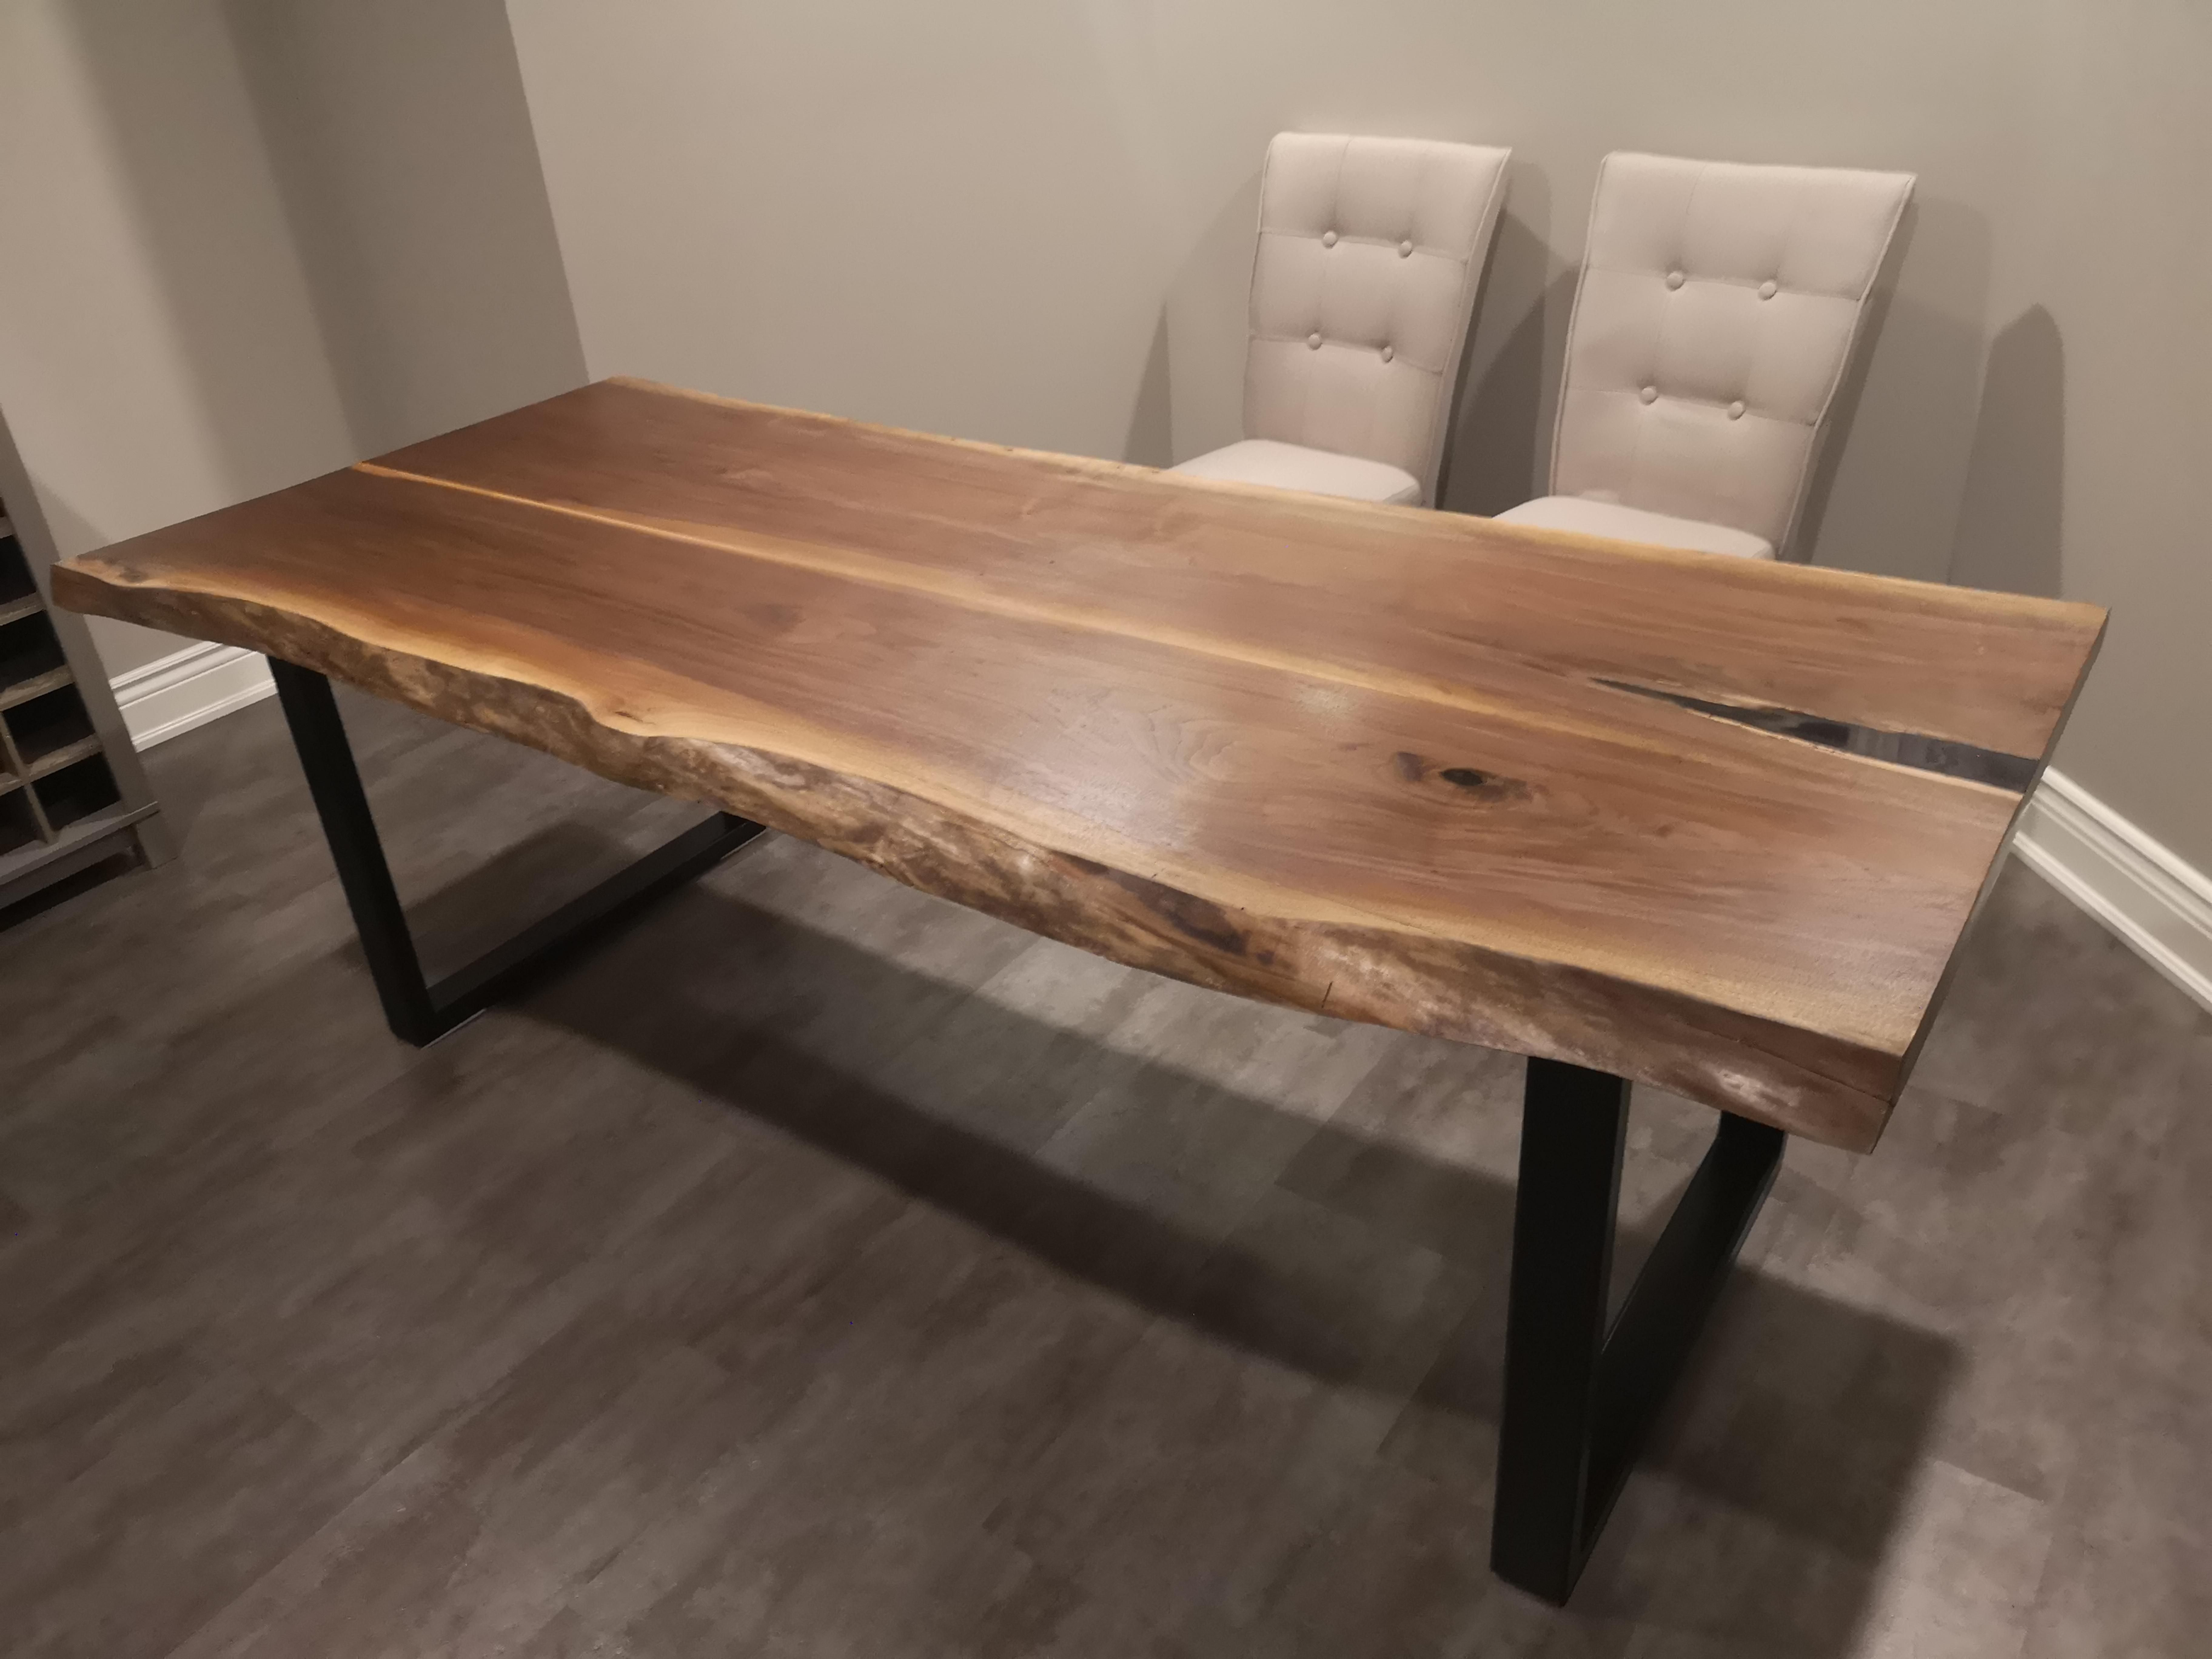 Finally Finished This Live Edge Black Walnut Dining Room Table Also My First Time Using Epoxy Click Walnut Dining Room Dining Room Table Walnut Dining Table